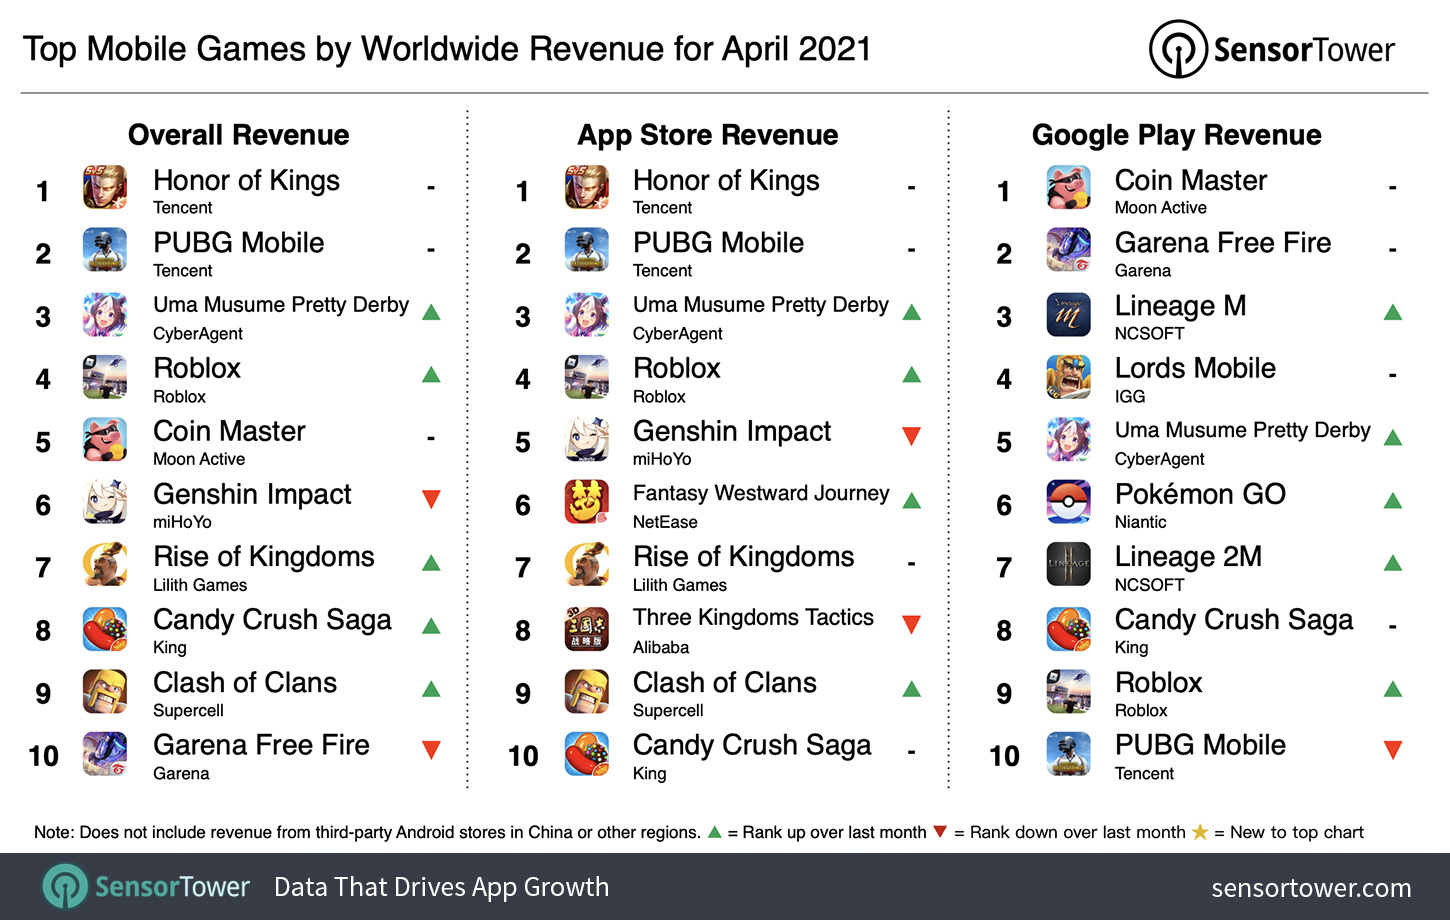 The highest grossing mobile games in the world for April 2021